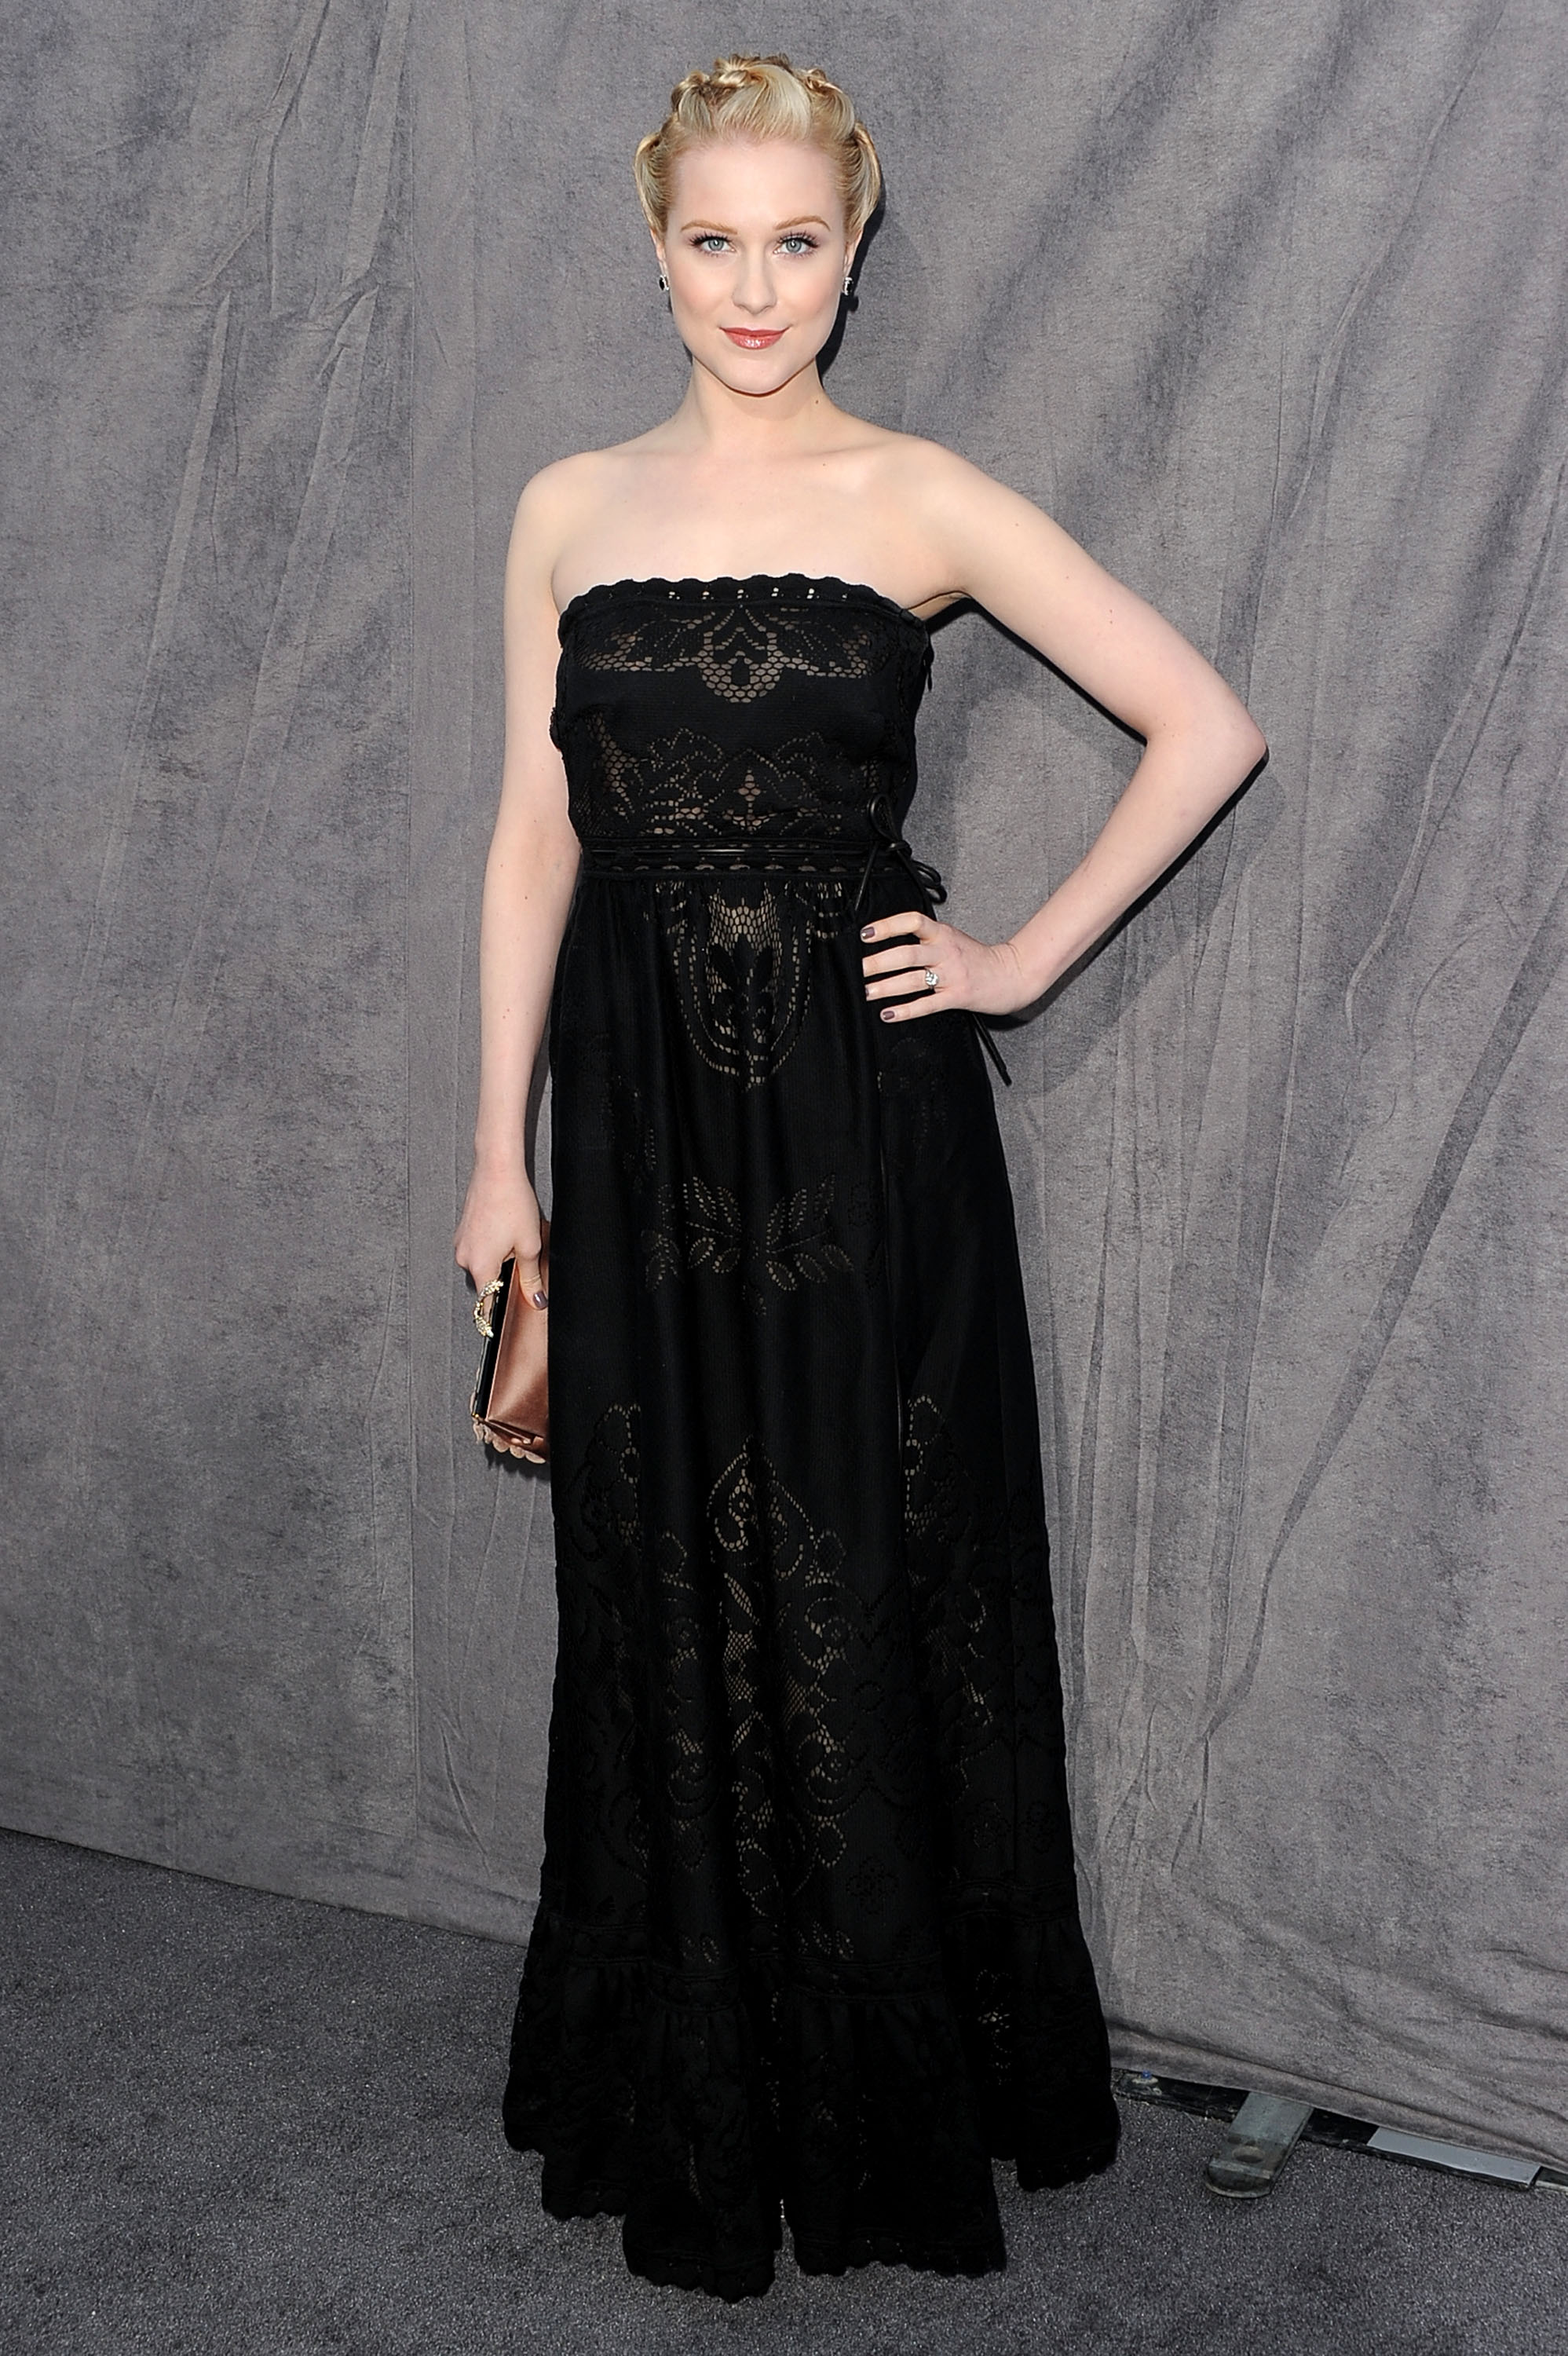 Evan Rachel Wood hit the grey carpet in a strapless black dress at the 2012 Critics' Choice Movie Awards.